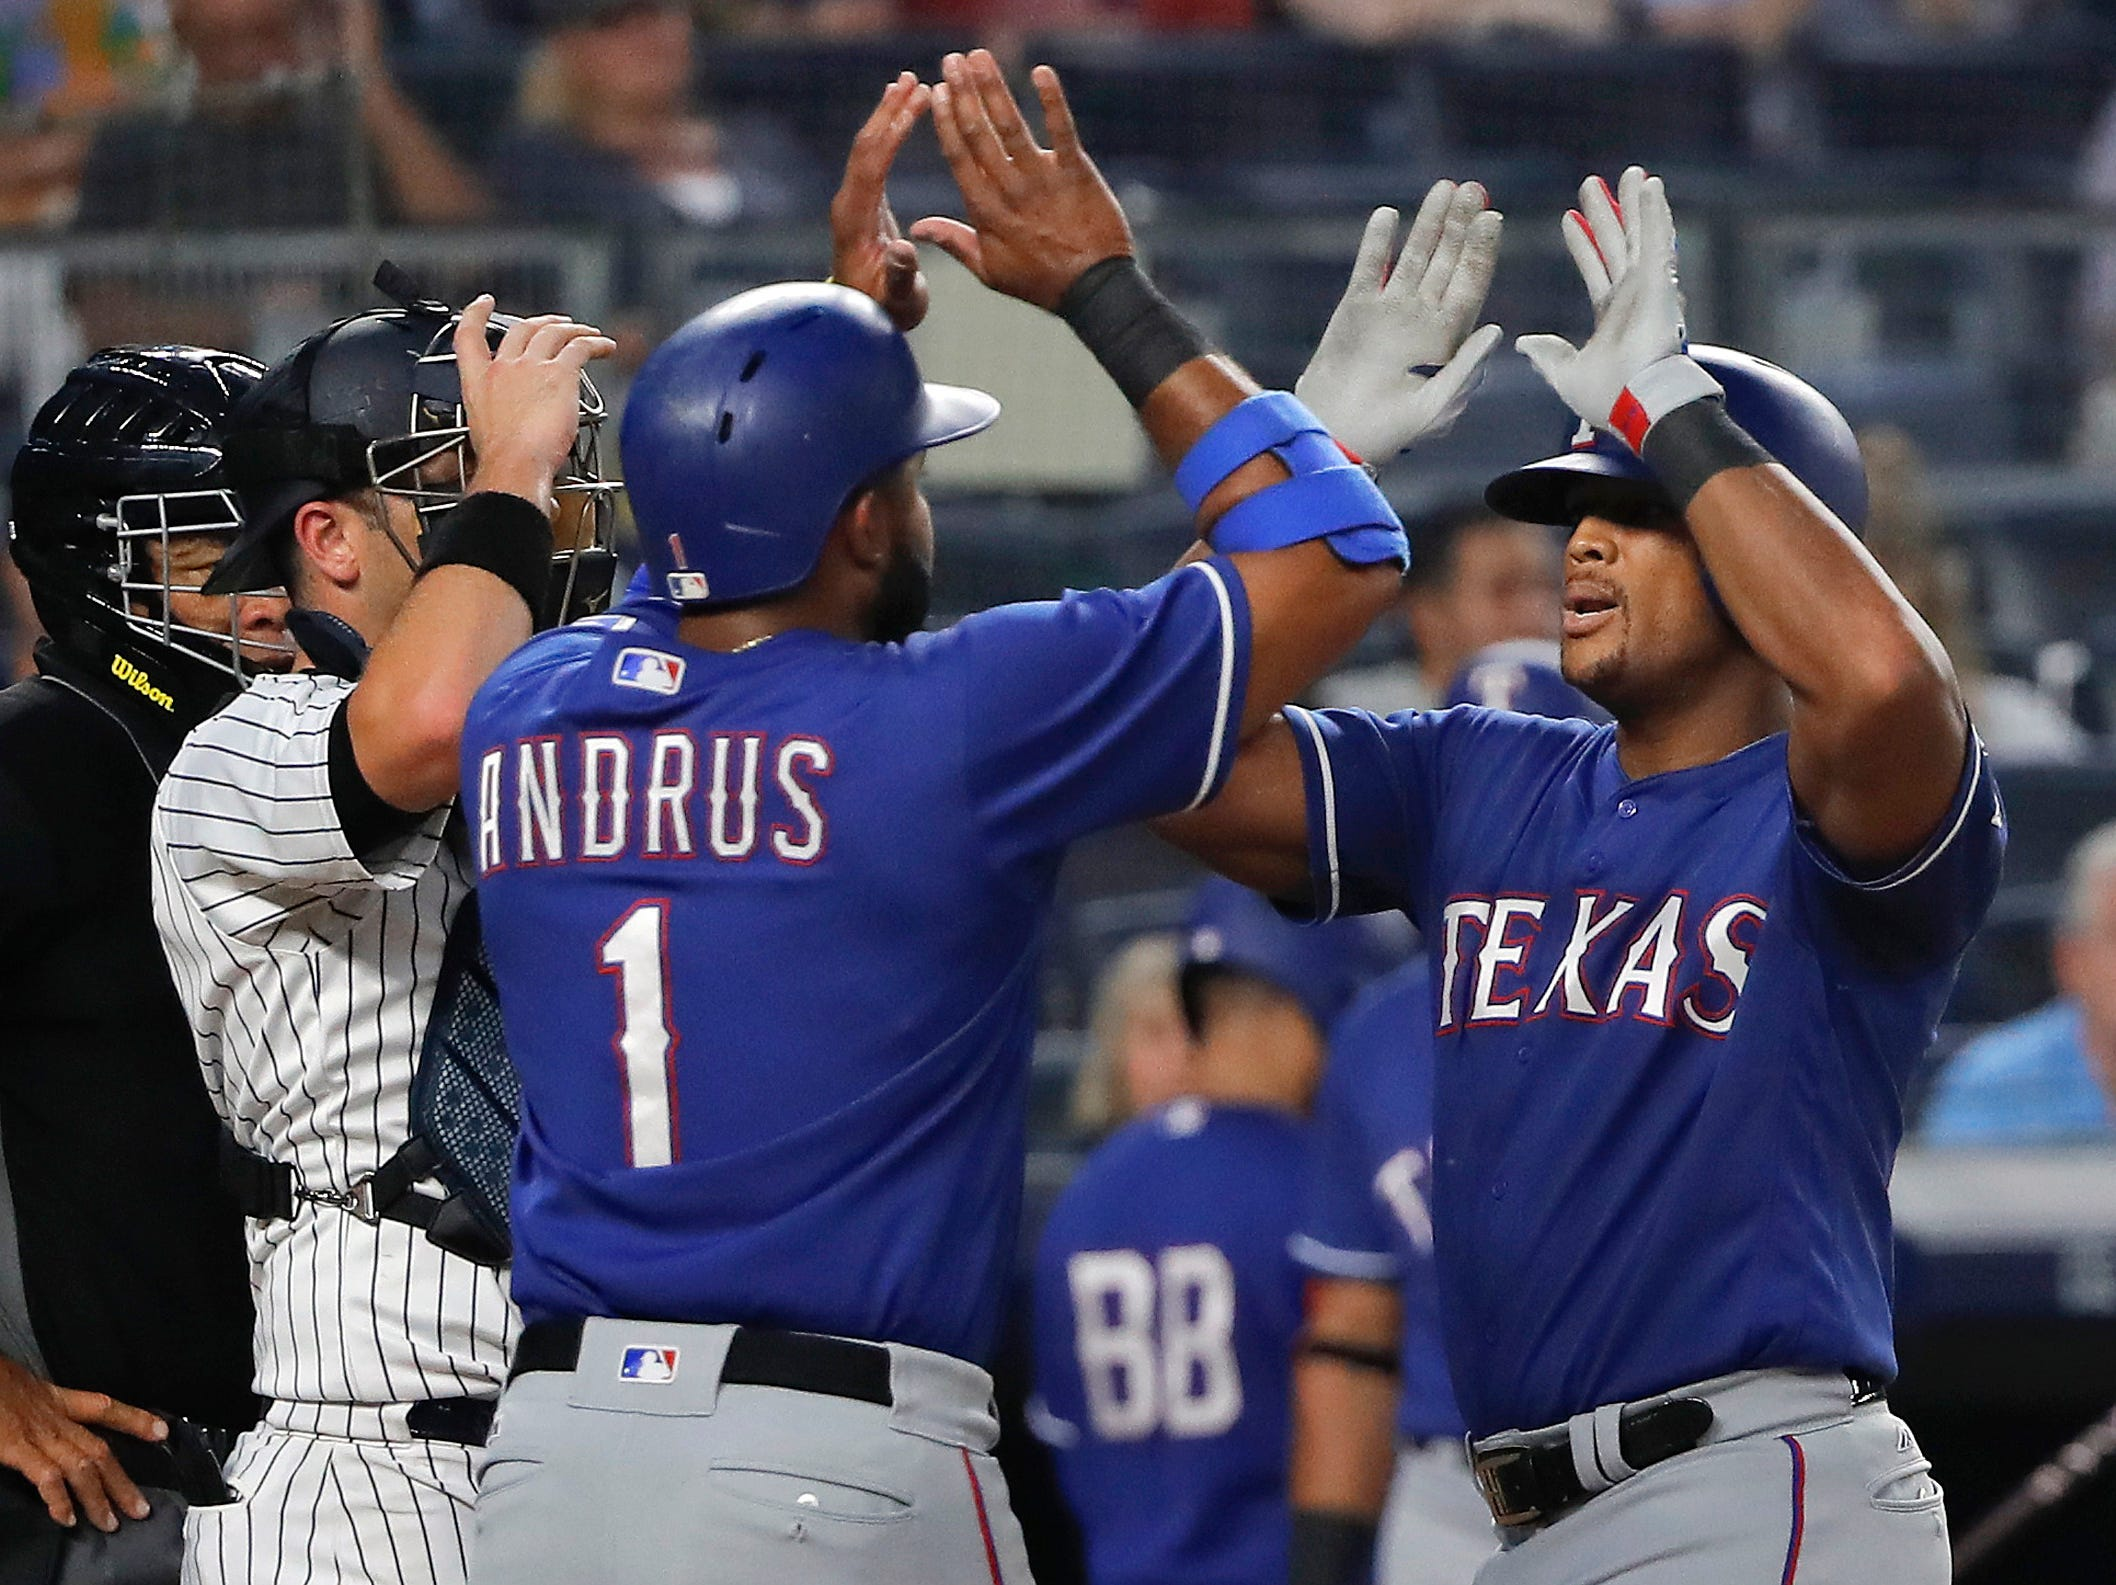 Texas Rangers' Adrian Beltre, right, is congratulated by Elvis Andrus (1) after hitting a two-run home run against the New York Yankees during the fourth inning of a baseball game Friday, Aug. 10, 2018, in New York.